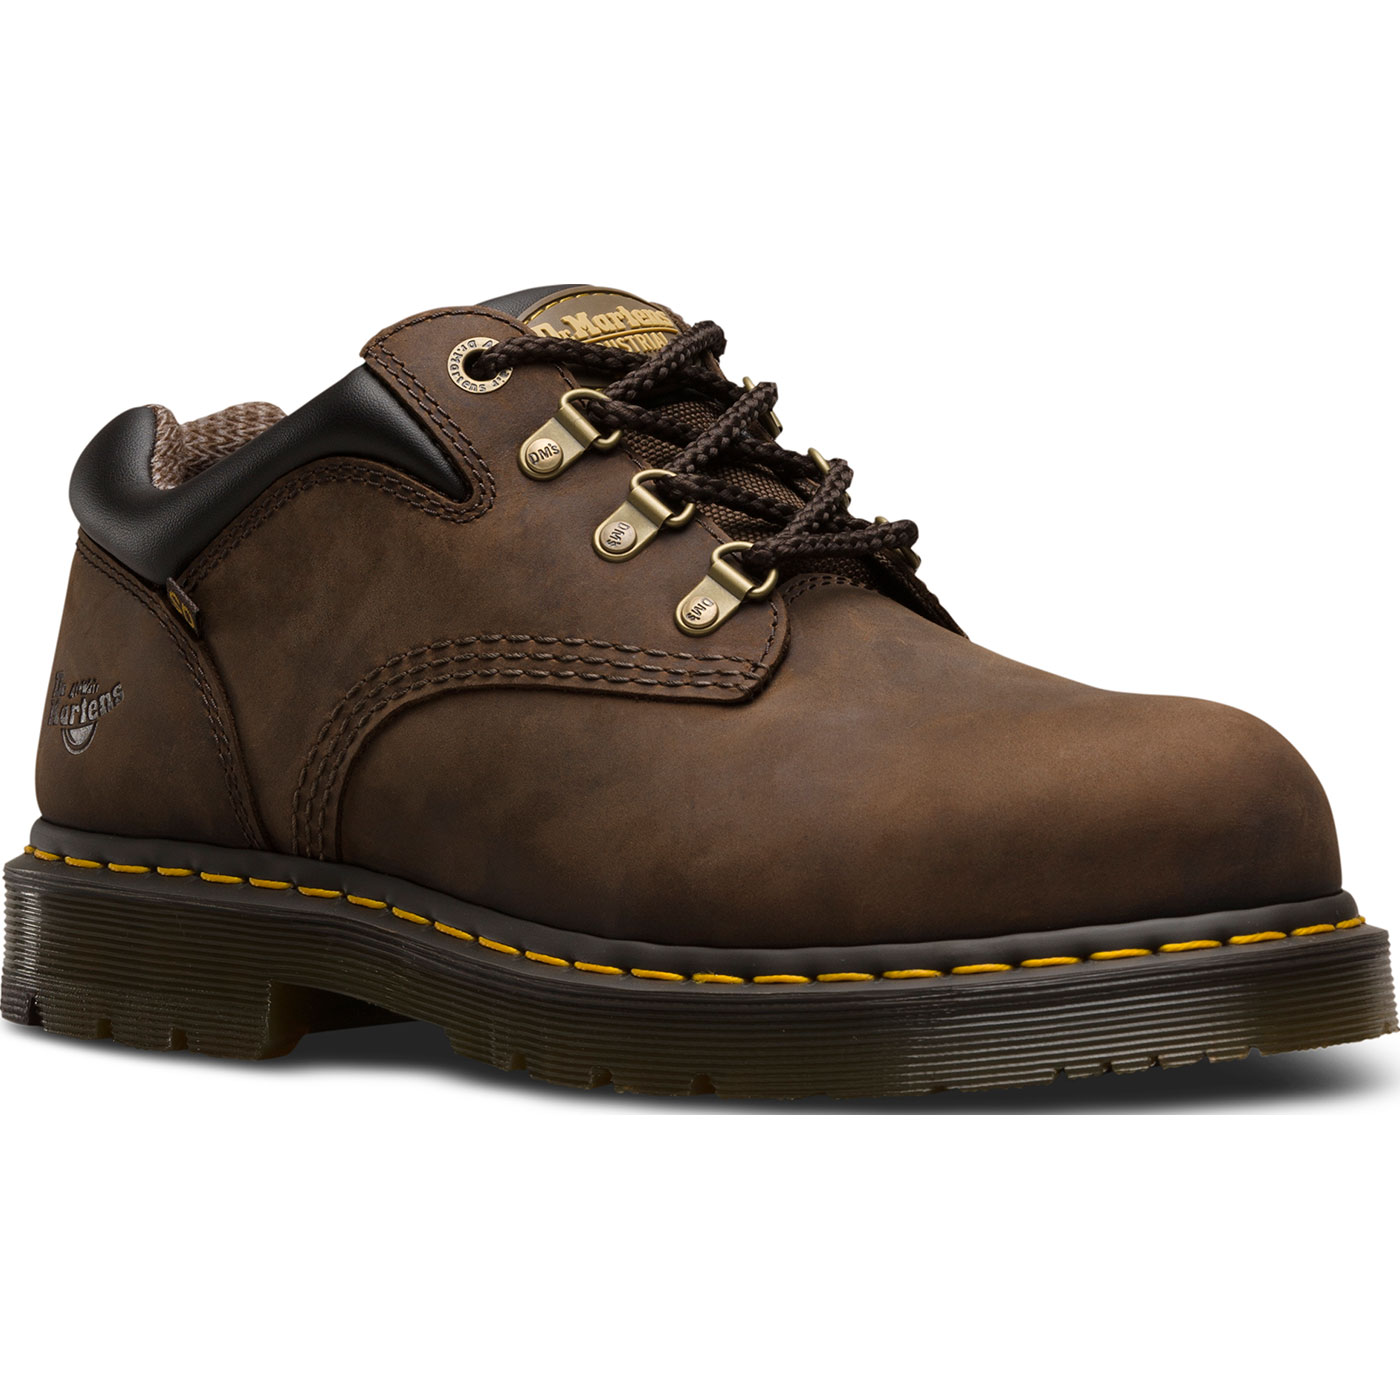 afea1306f6b Dr. Martens Hylow Men's Steel Toe Static Dissipative Brown Work Oxford